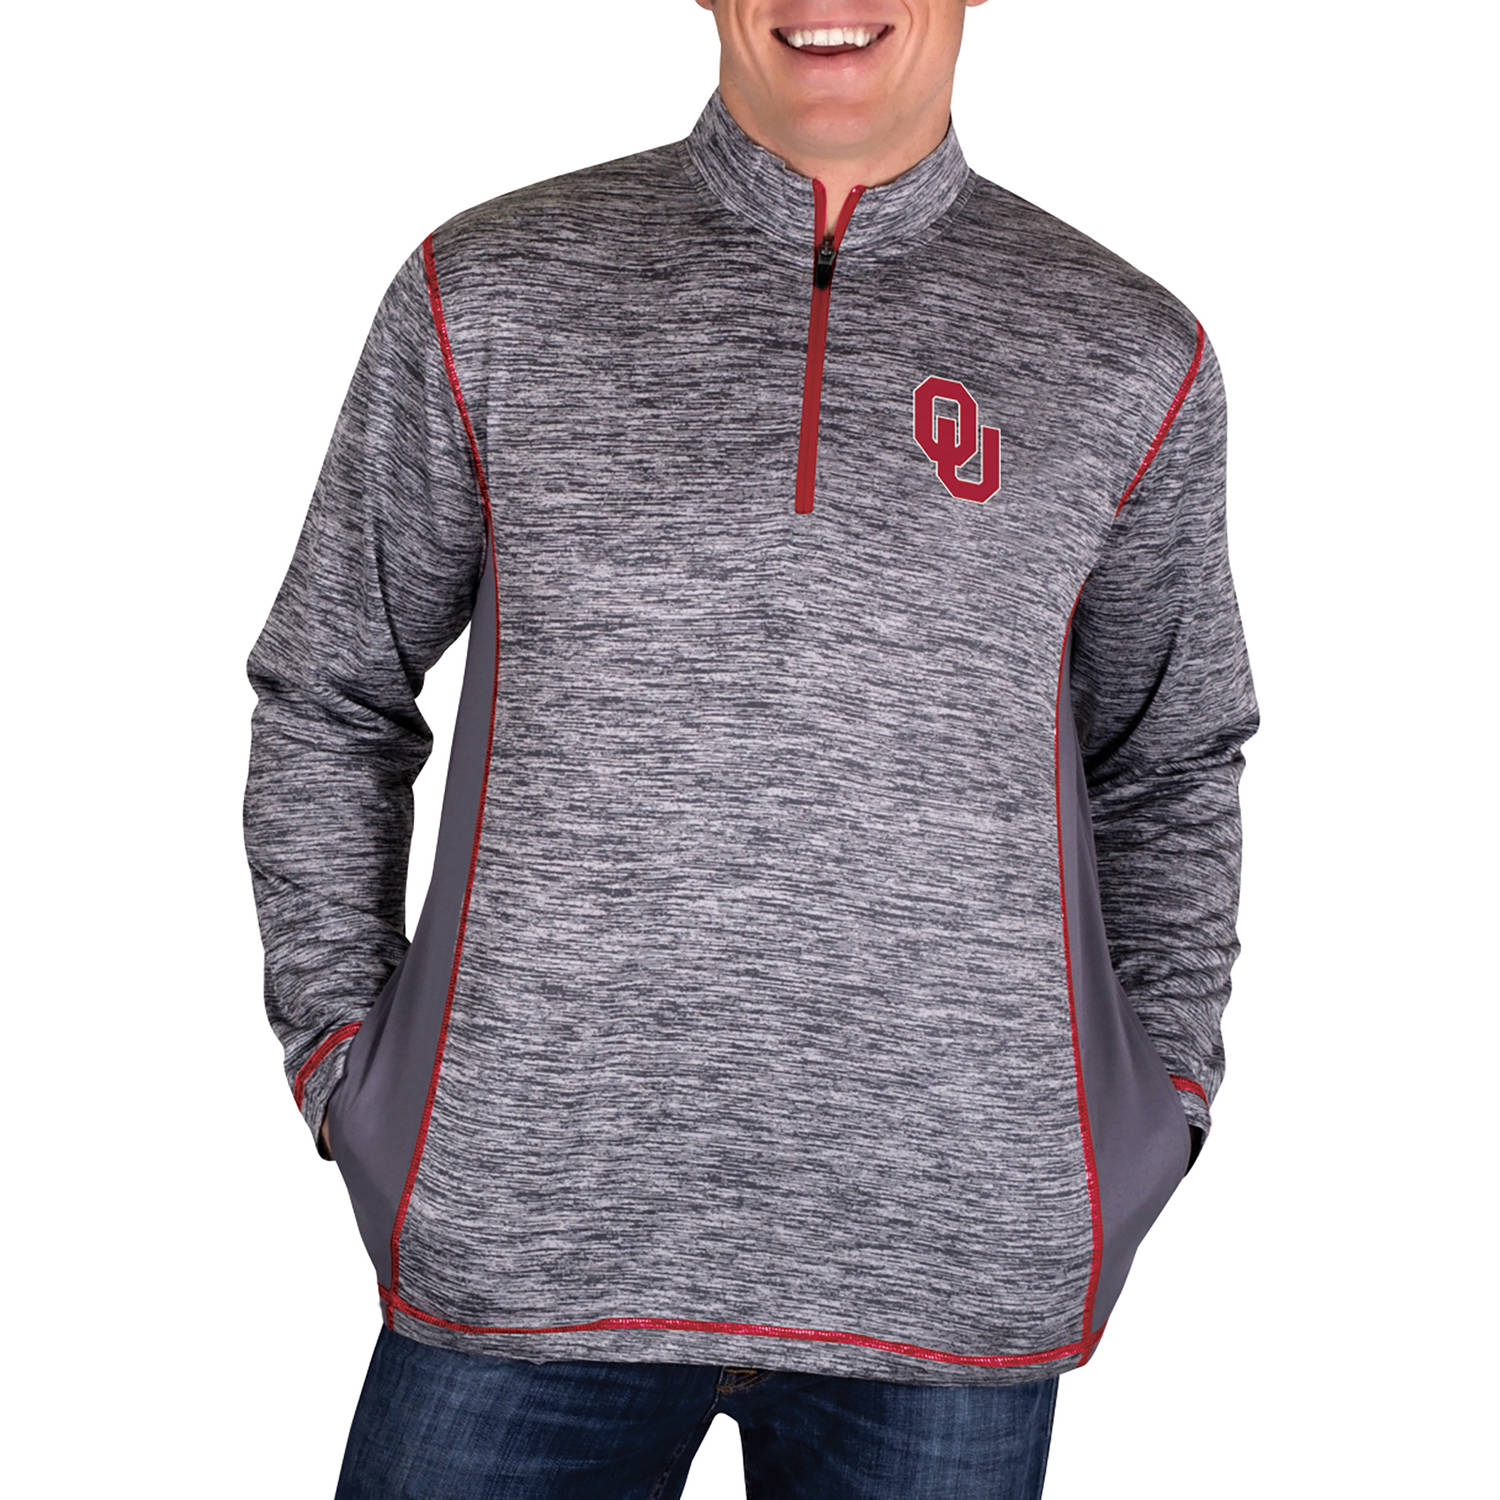 NCAA Oklahoma Sooners Men's 1/4 Zip Athletic-Fit Fitness Jacket